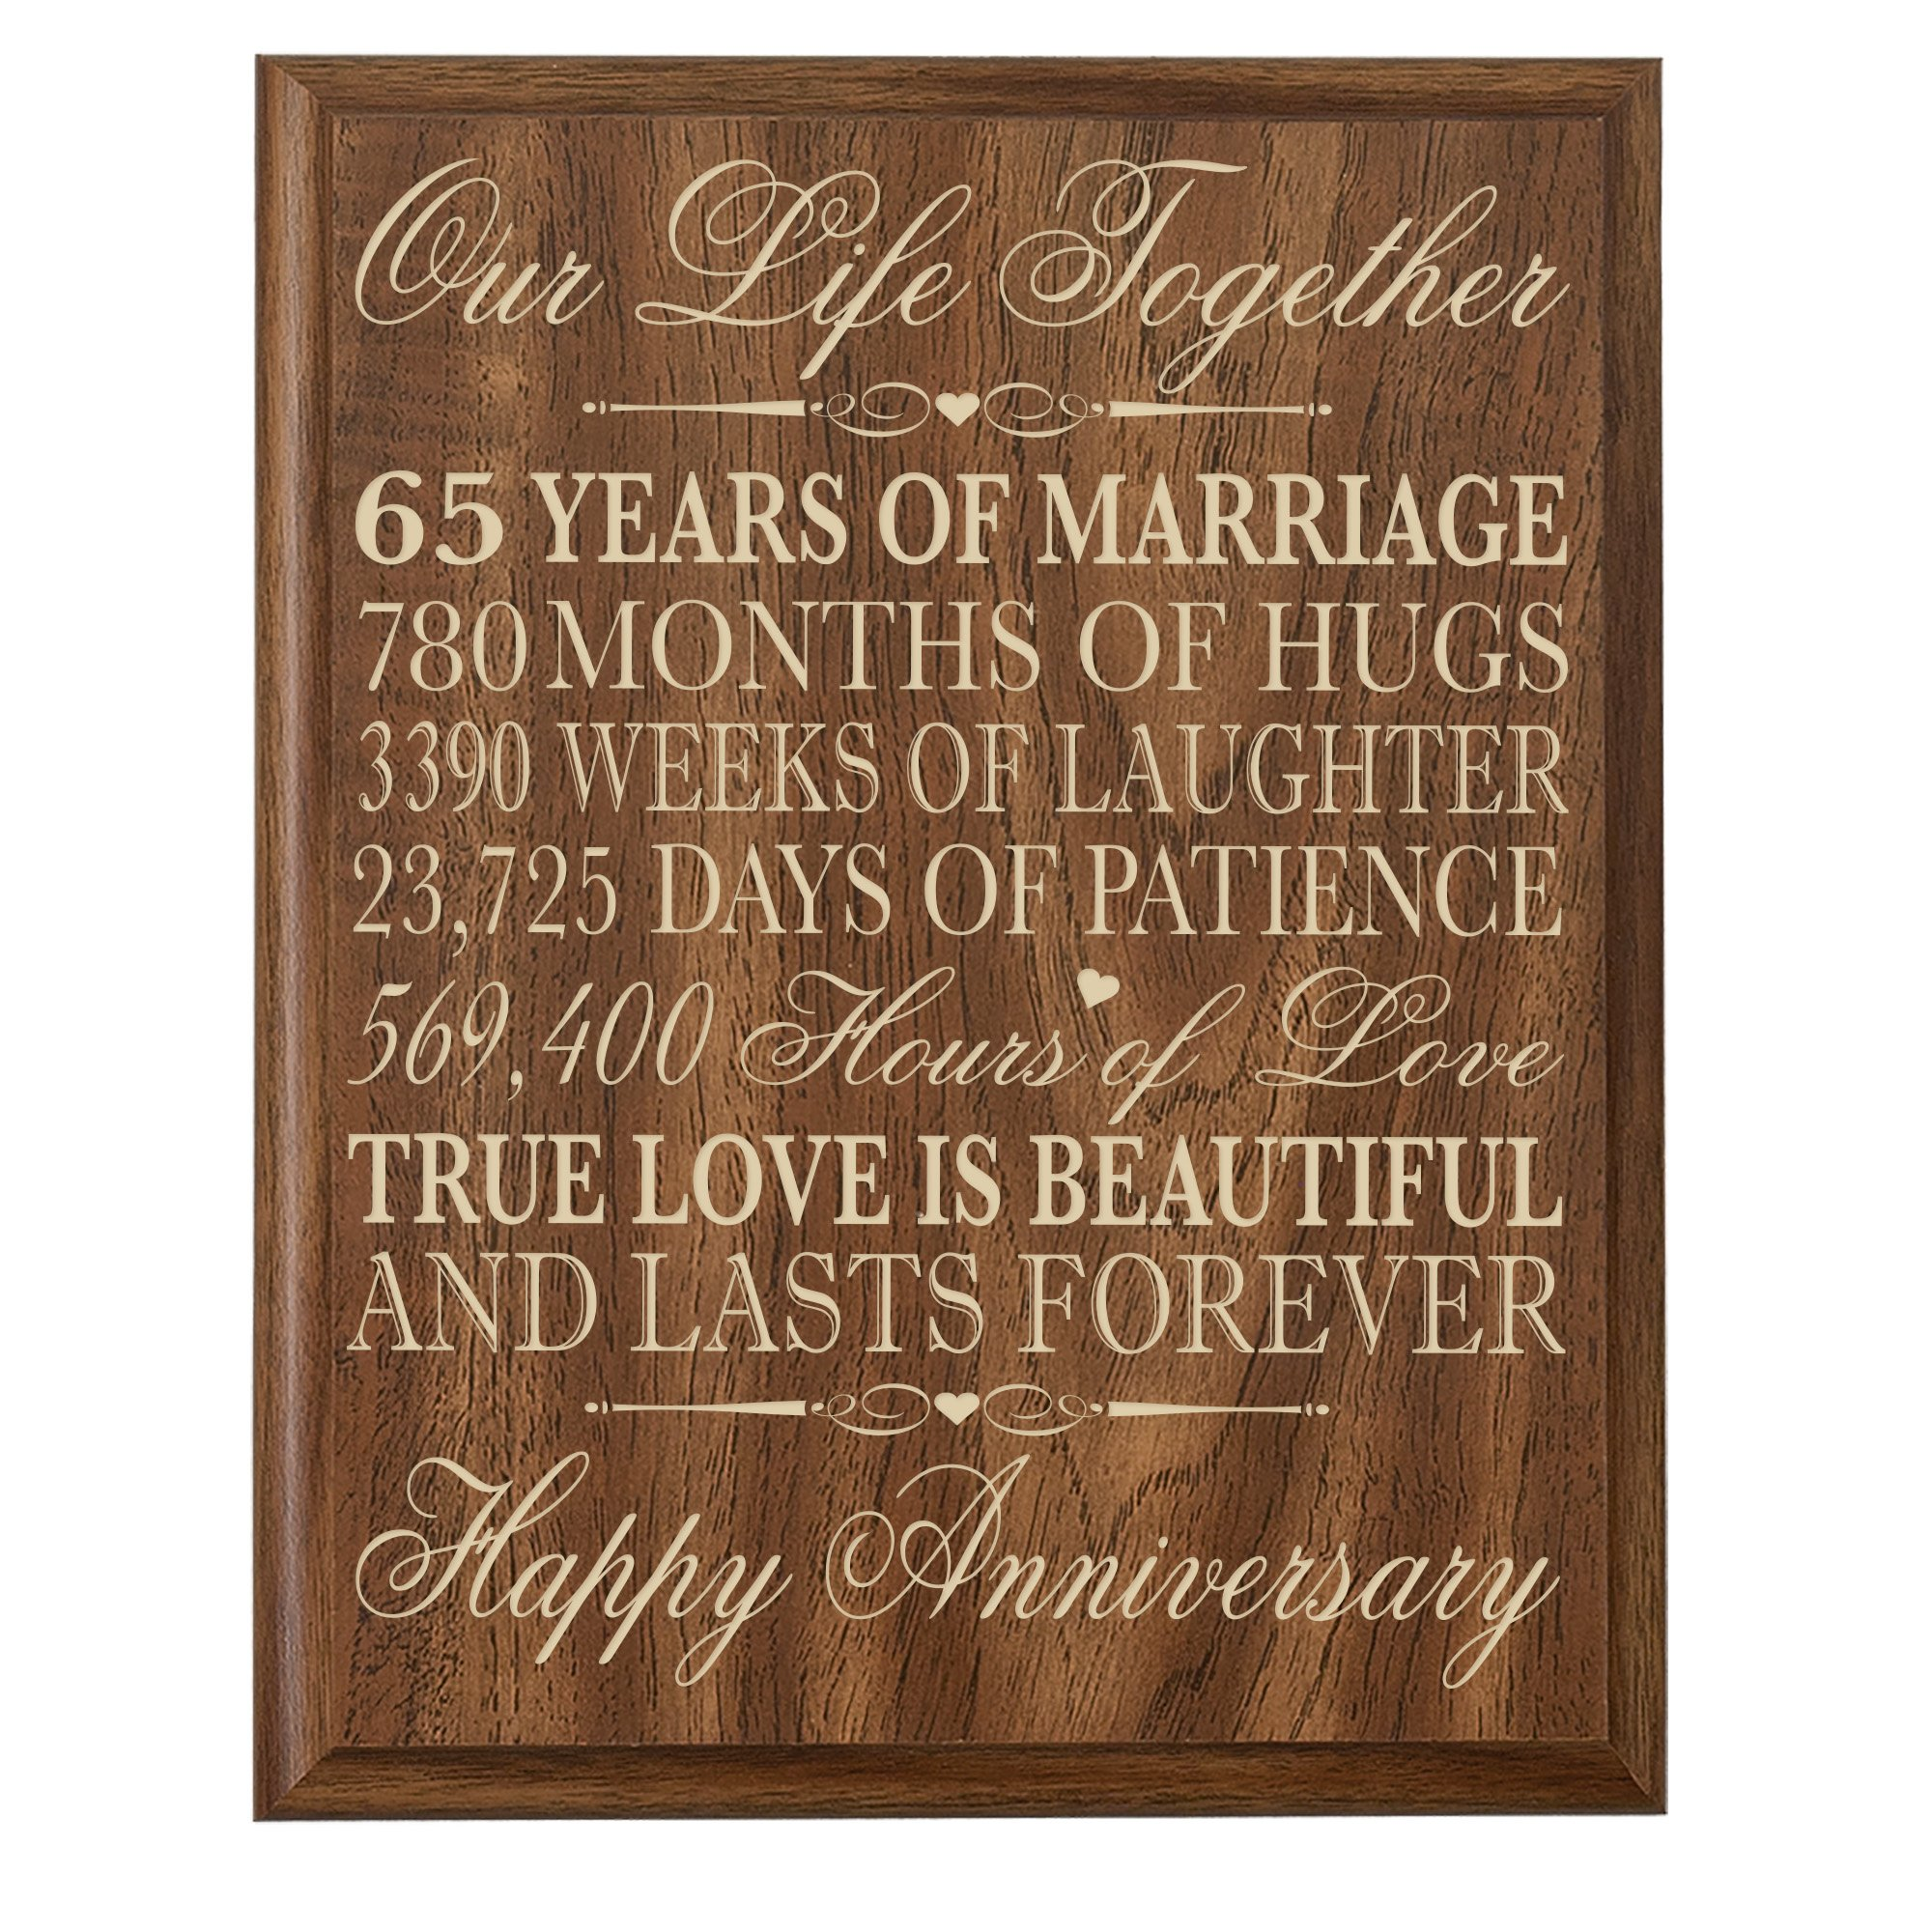 Gifts For 65th Wedding Anniversary: Buy 65th Wedding Anniversary Wall Plaque Gifts For Couple